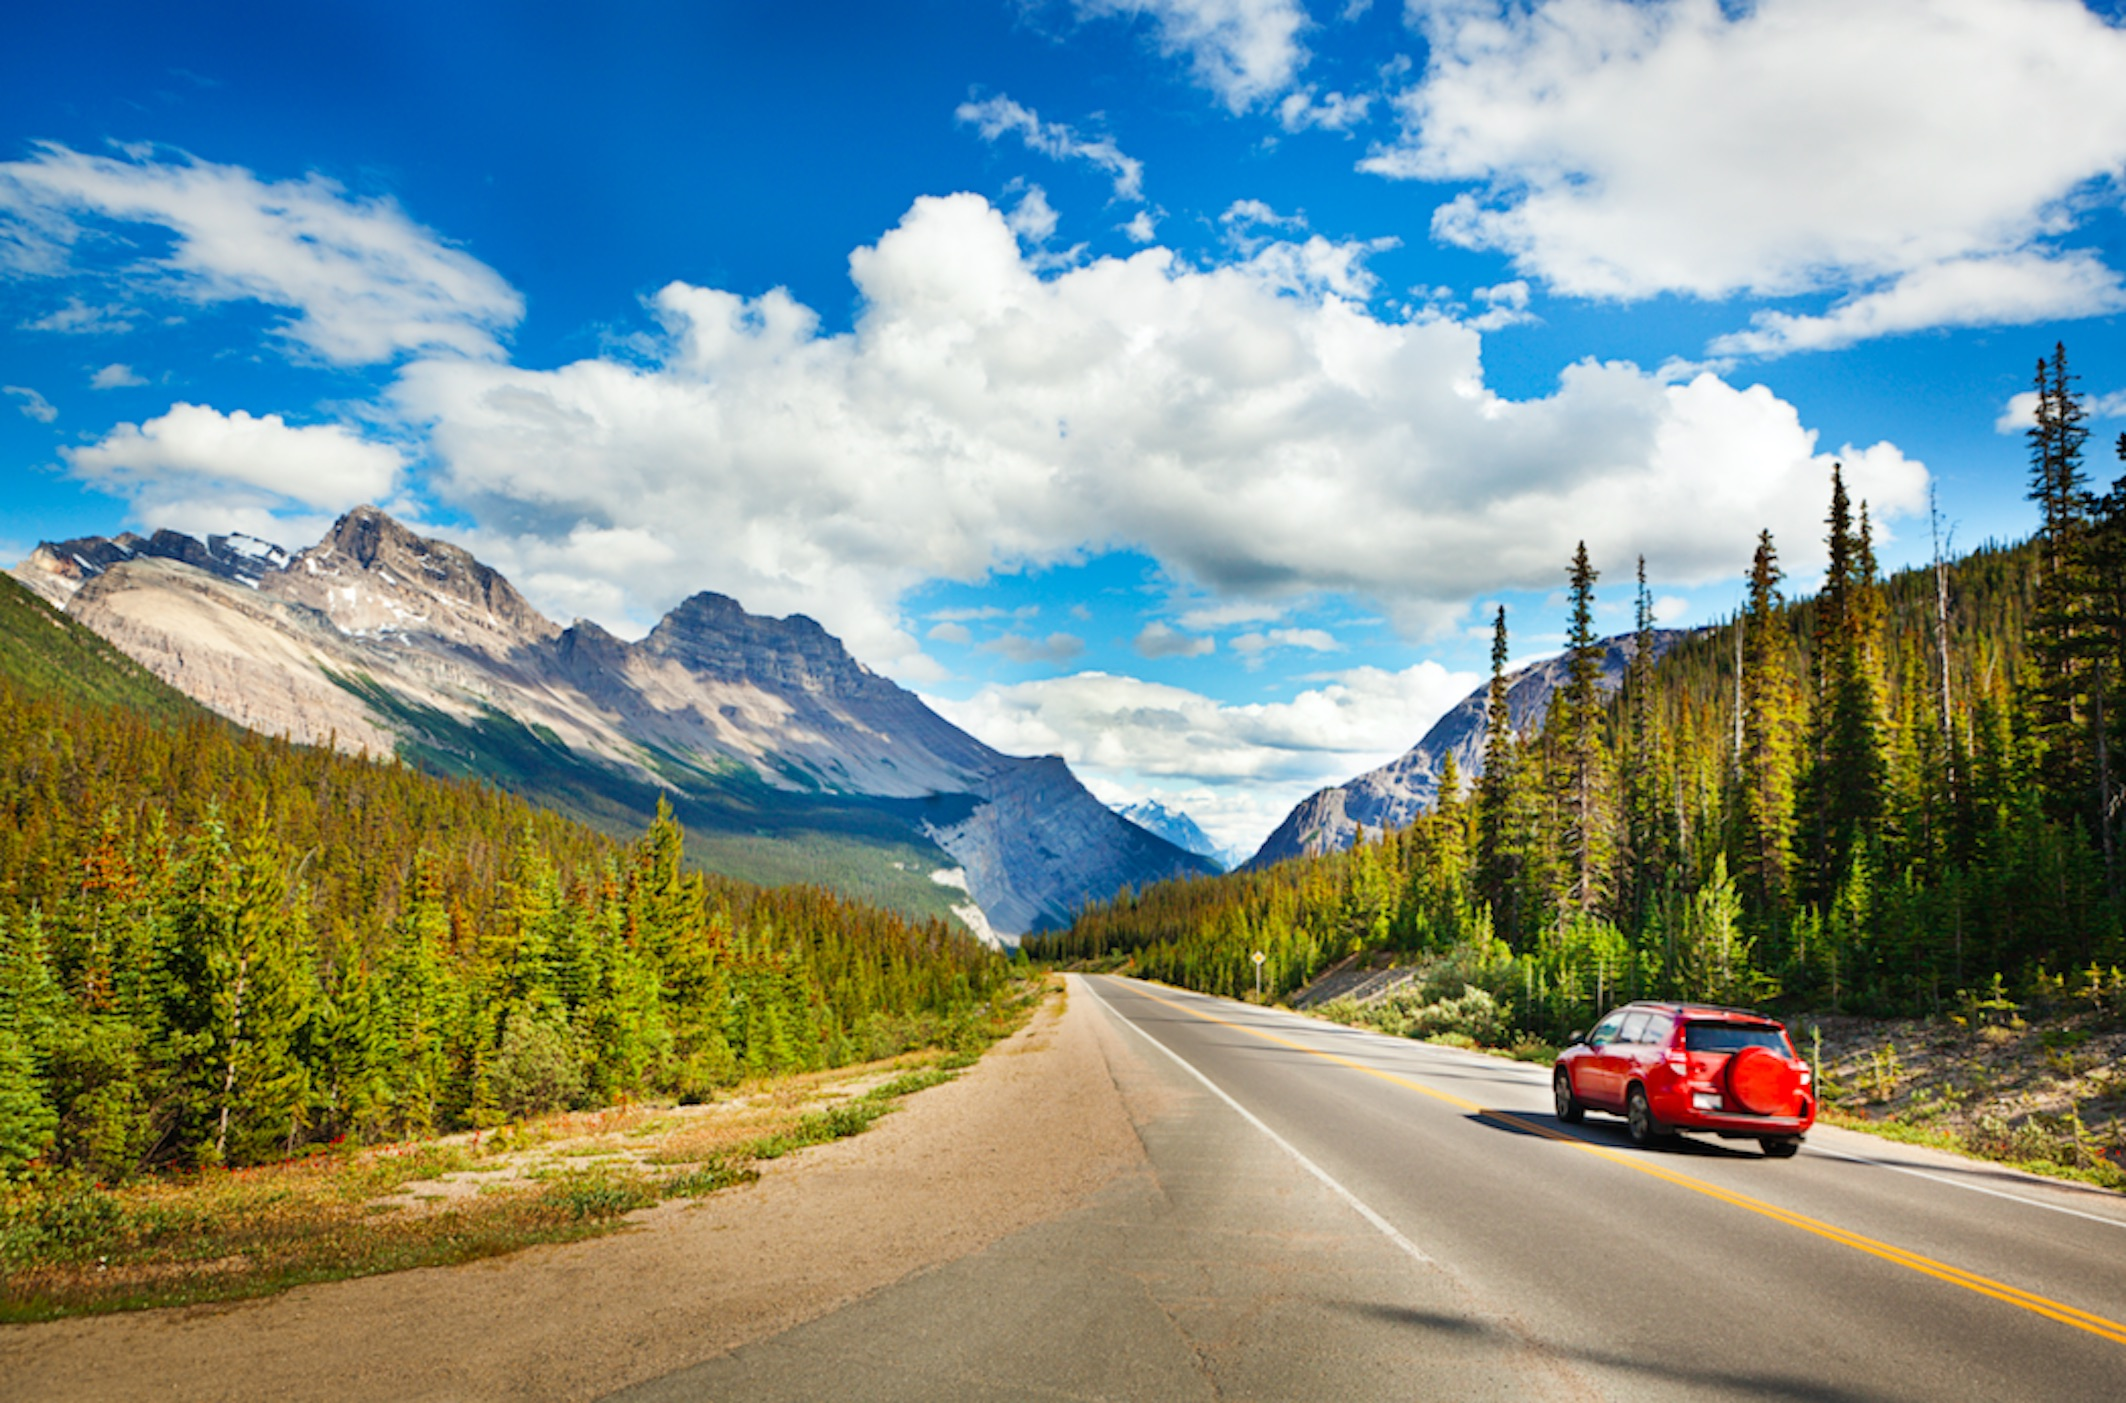 Road trip quotes: 10 quotes that will make you hit the road